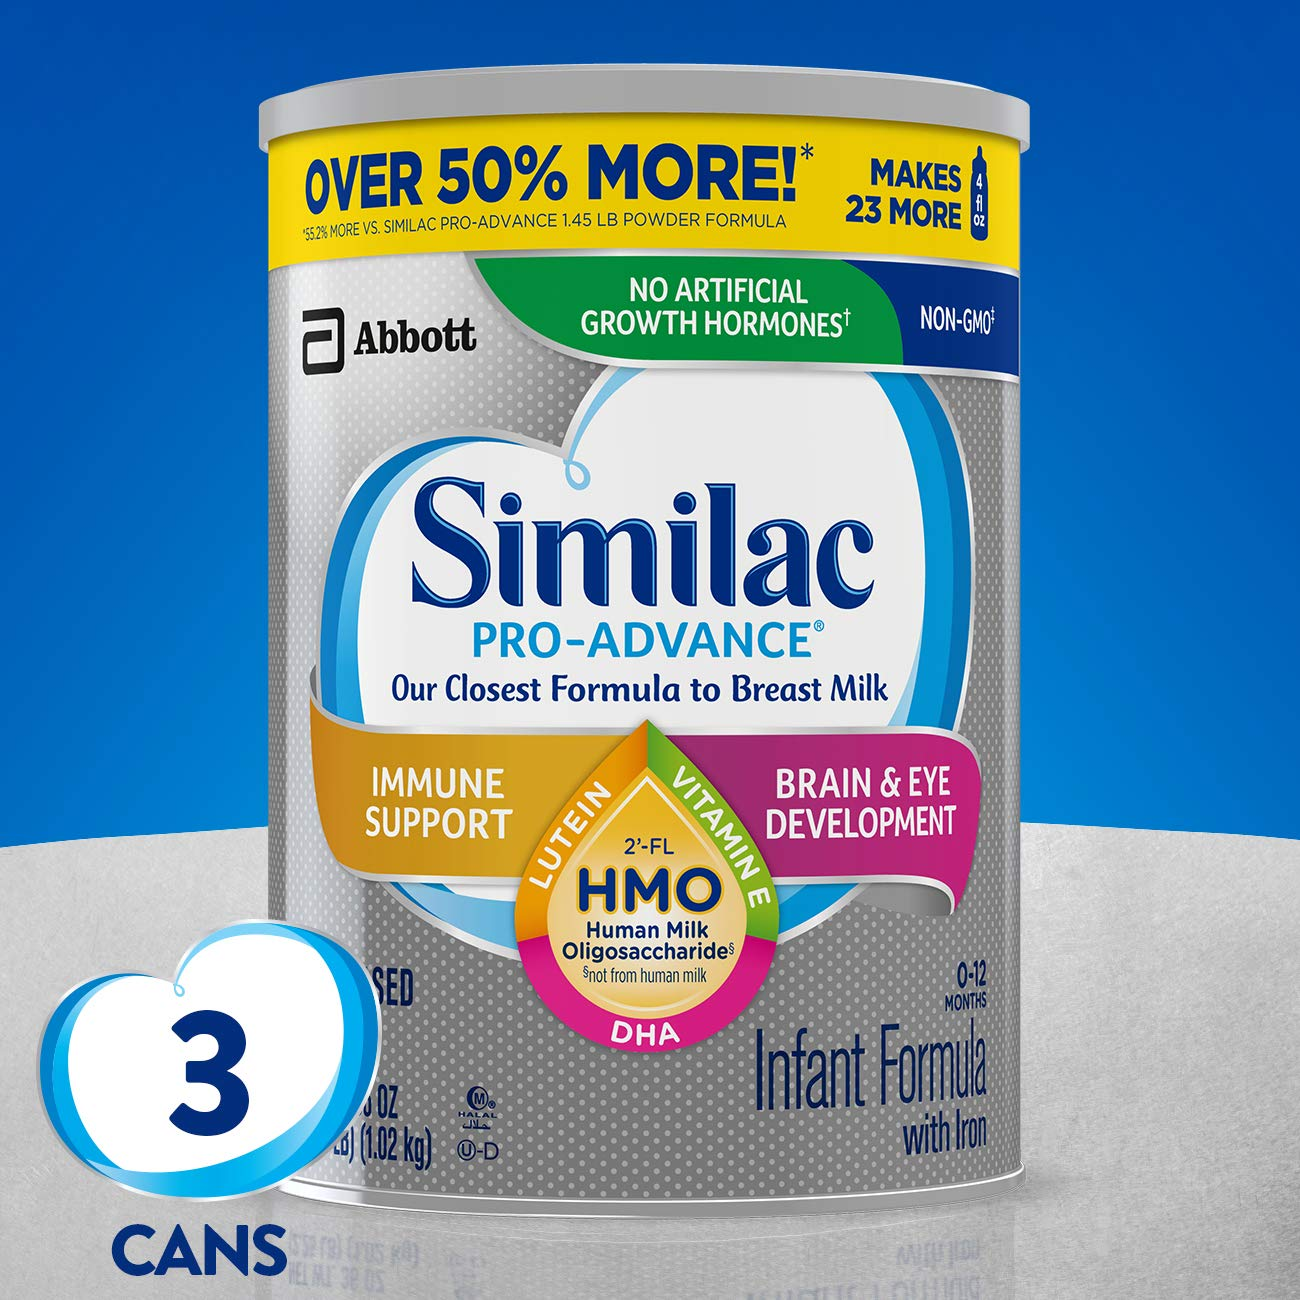 Similac Pro-Advance Non-GMO Infant Formula with Iron, with 2'-FL HMO, for Immune Support, Baby Formula, Powder, 36 oz, 3 Count (One-Month Supply) by Similac